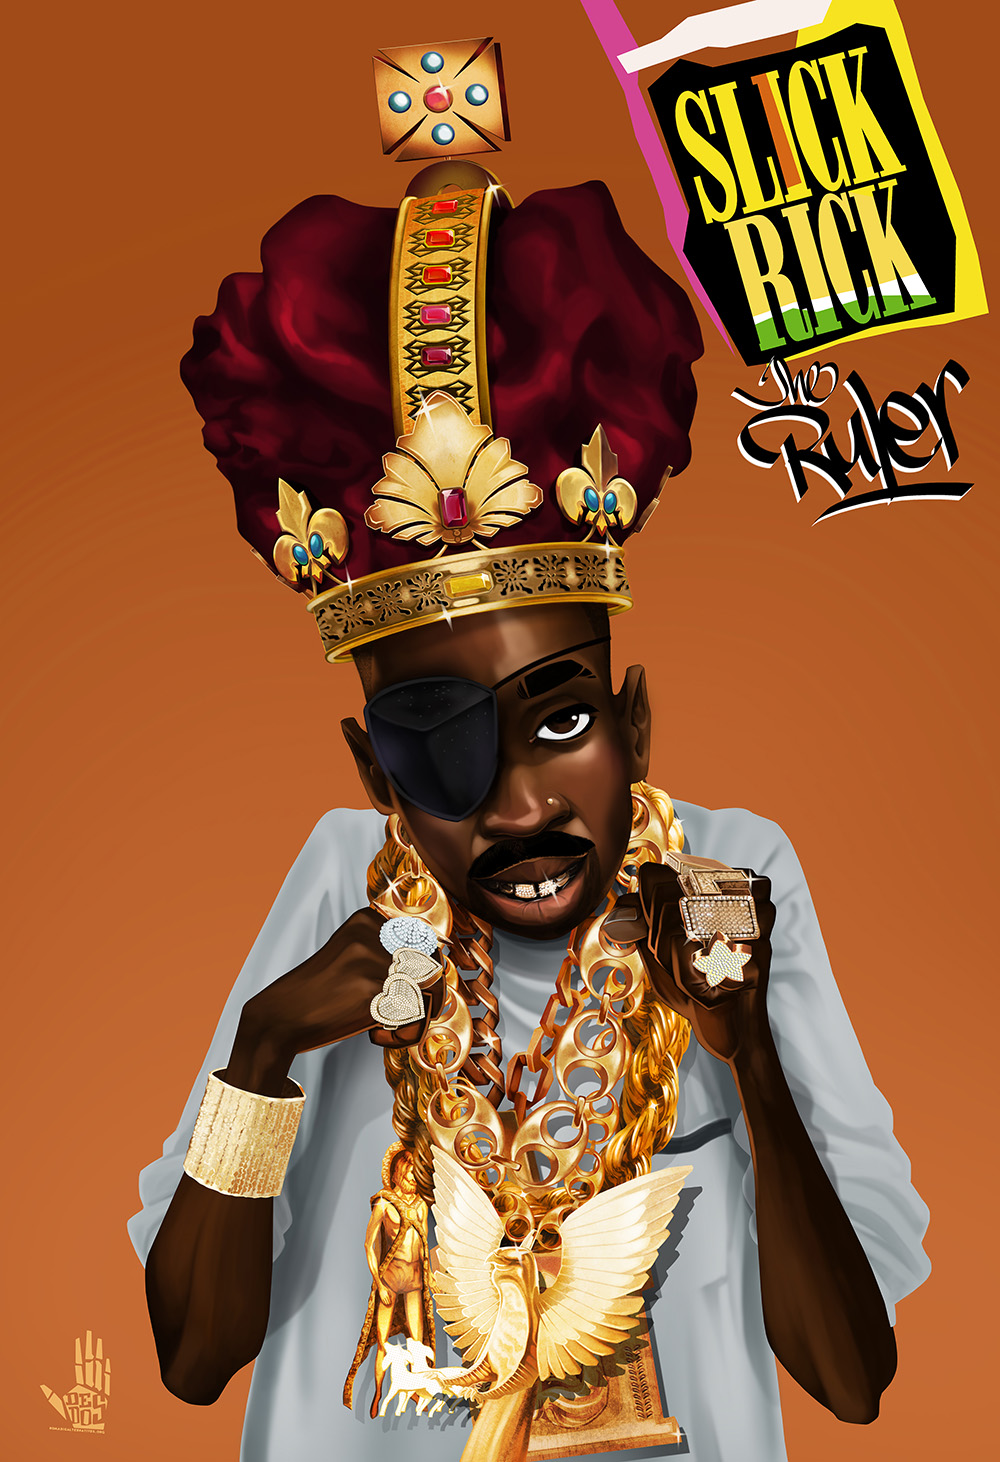 SLICK RICK the Ruler cartoon version